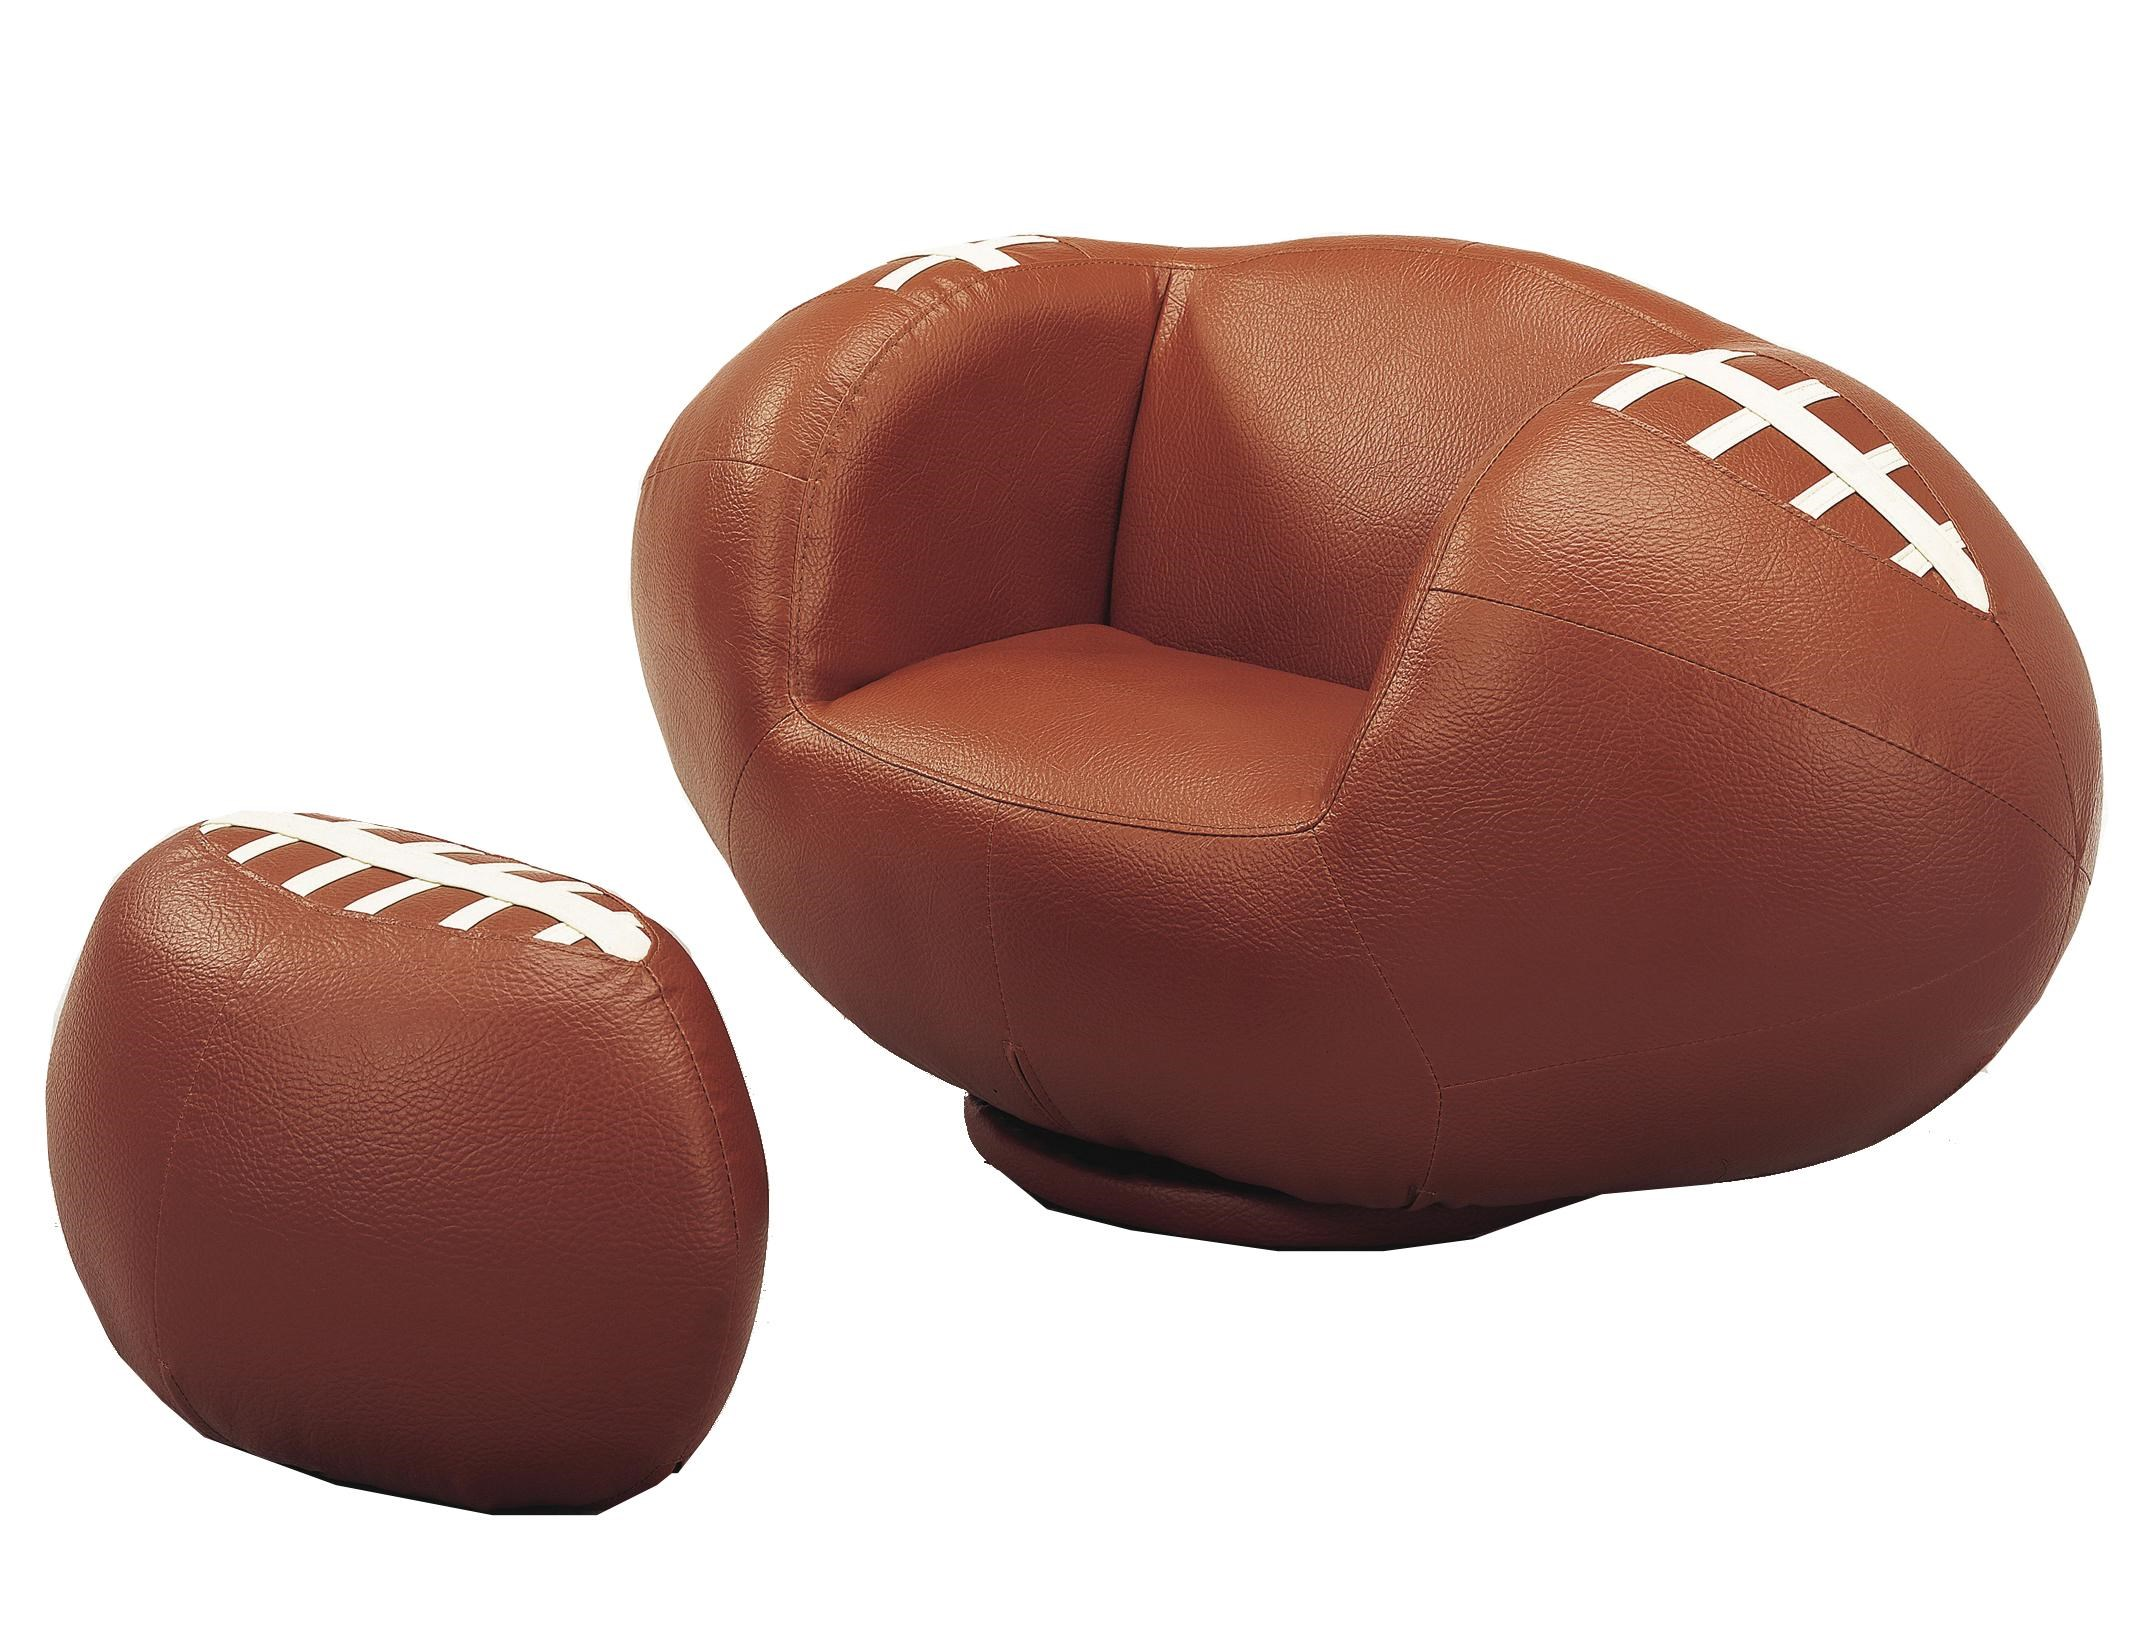 Chairs With Ottoman Kids Sport Chairs Football Swivel Chair Ottoman By Crown Mark At Royal Furniture